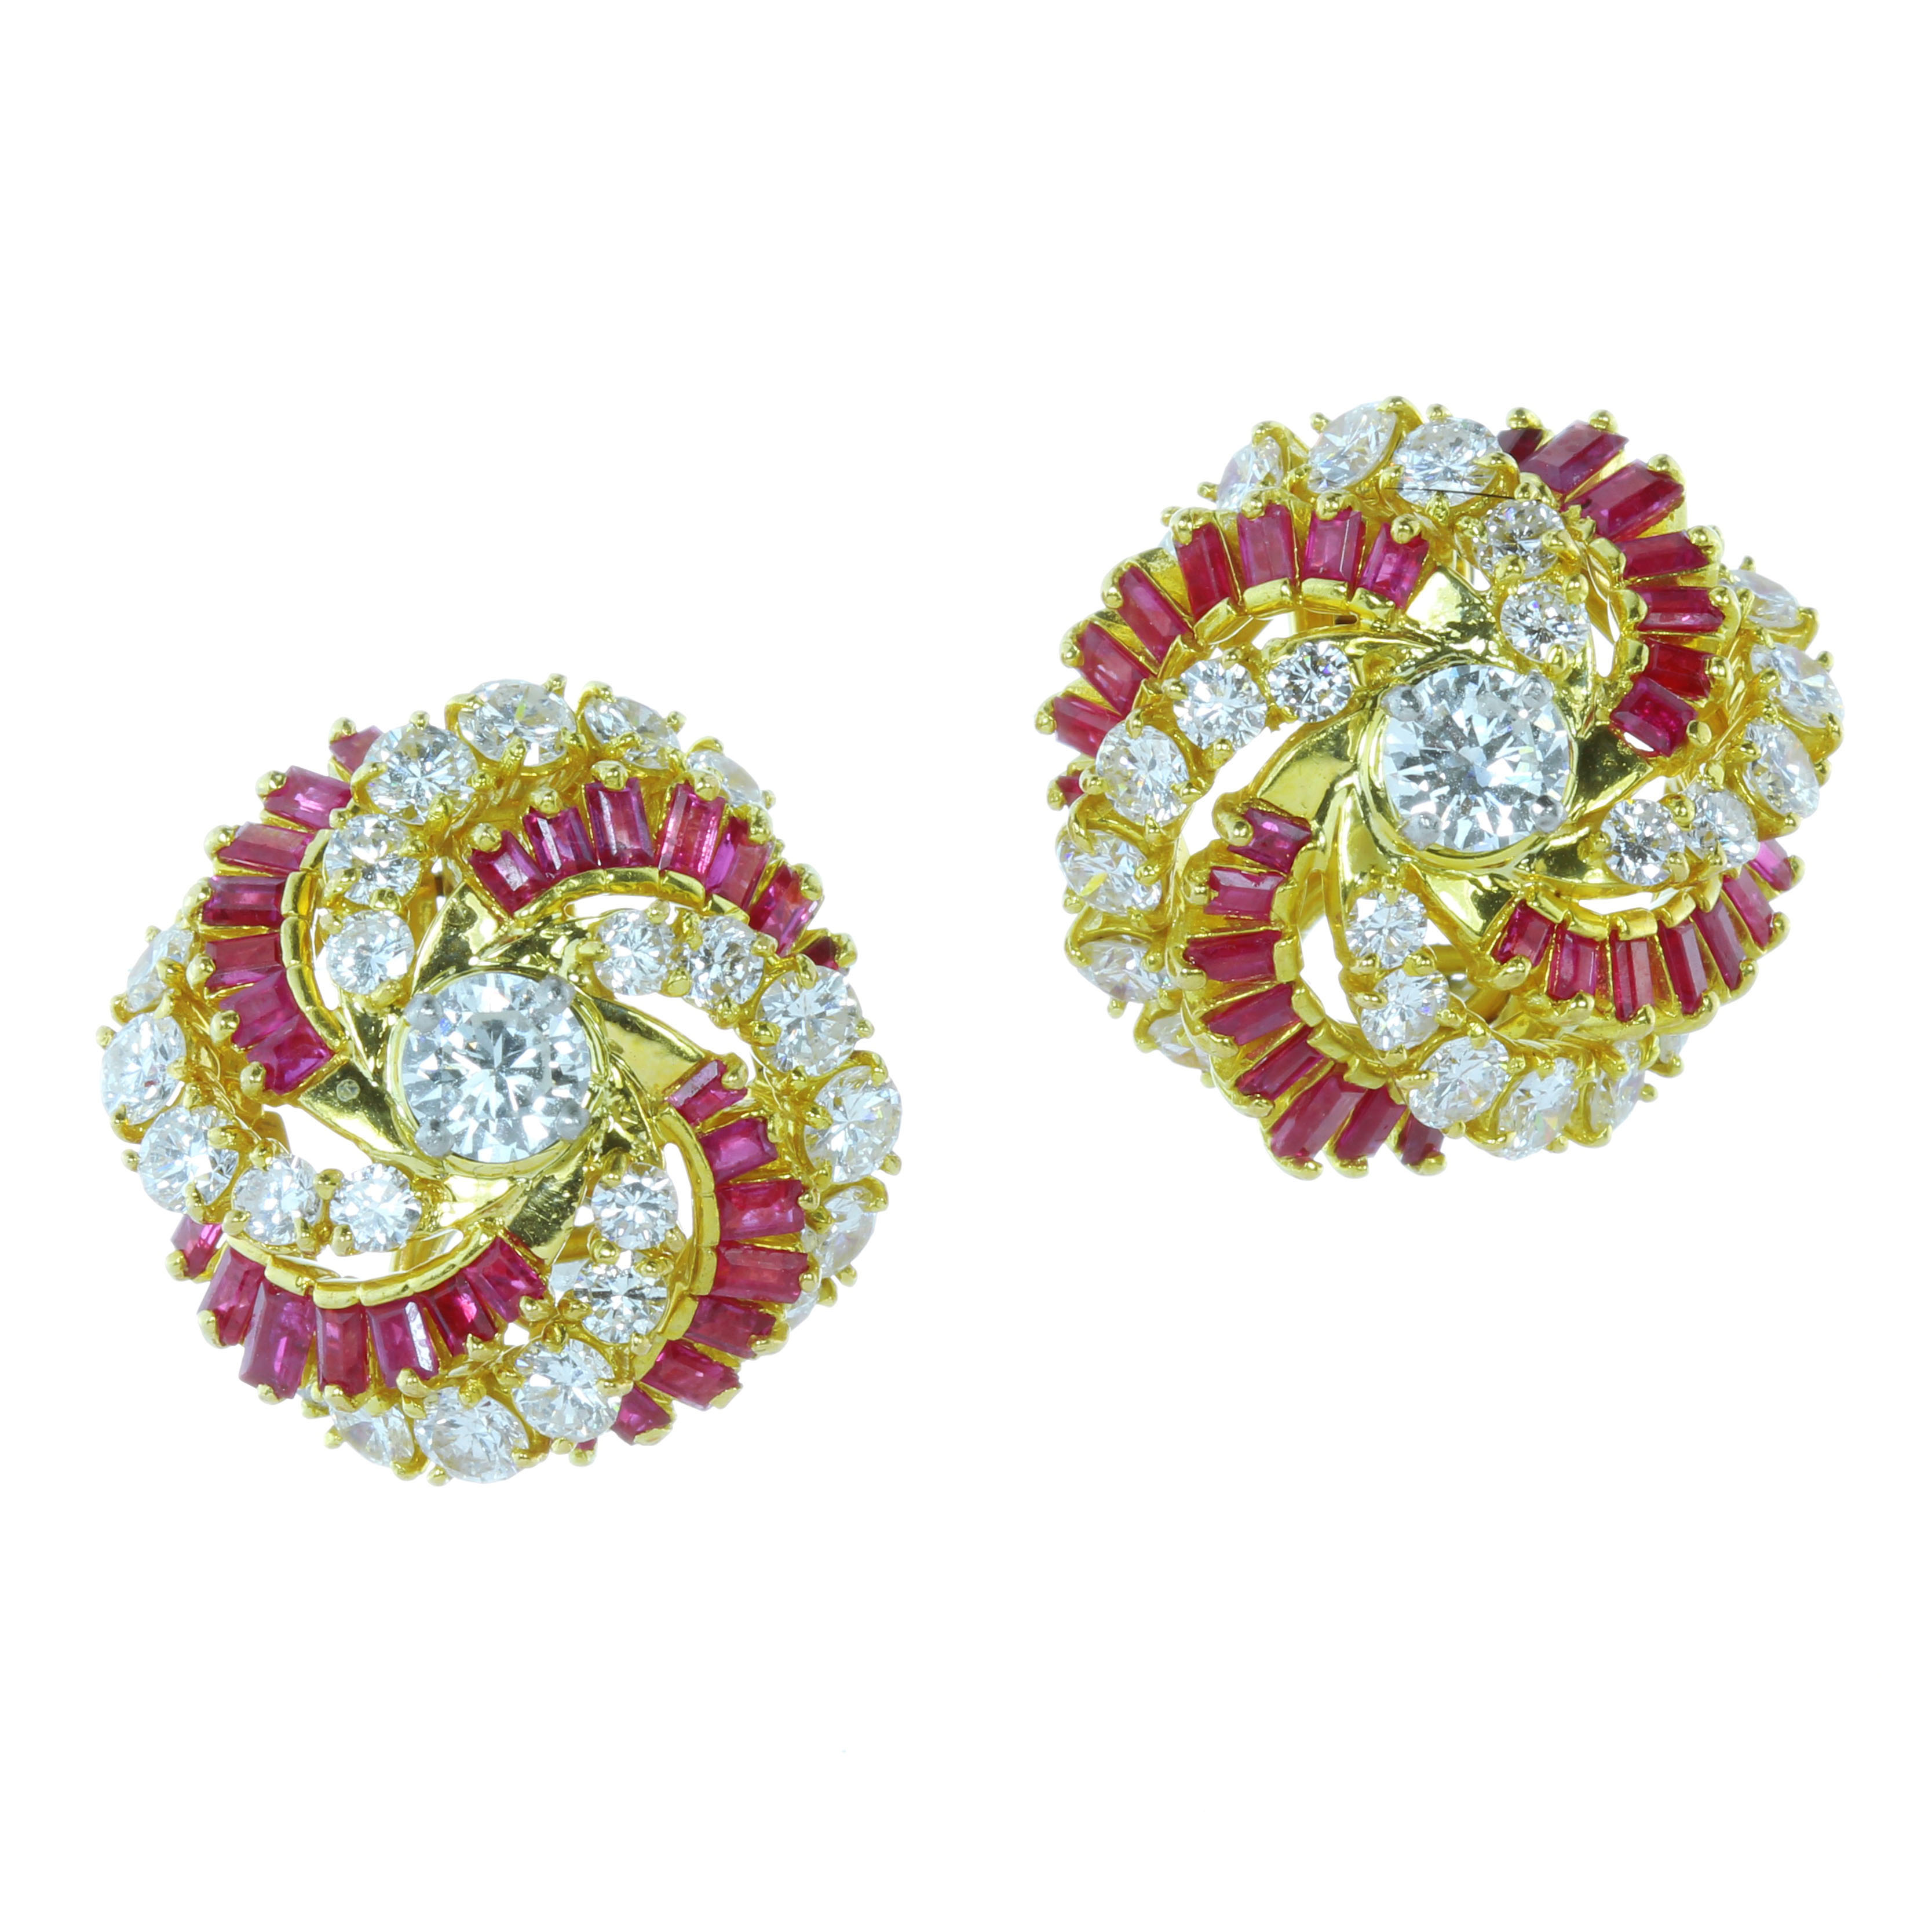 A PAIR OF VINTAGE DIAMOND AND RUBY EARRINGS, KUTCHINSKY CIRCA 1965 in 18ct yellow gold, each earring